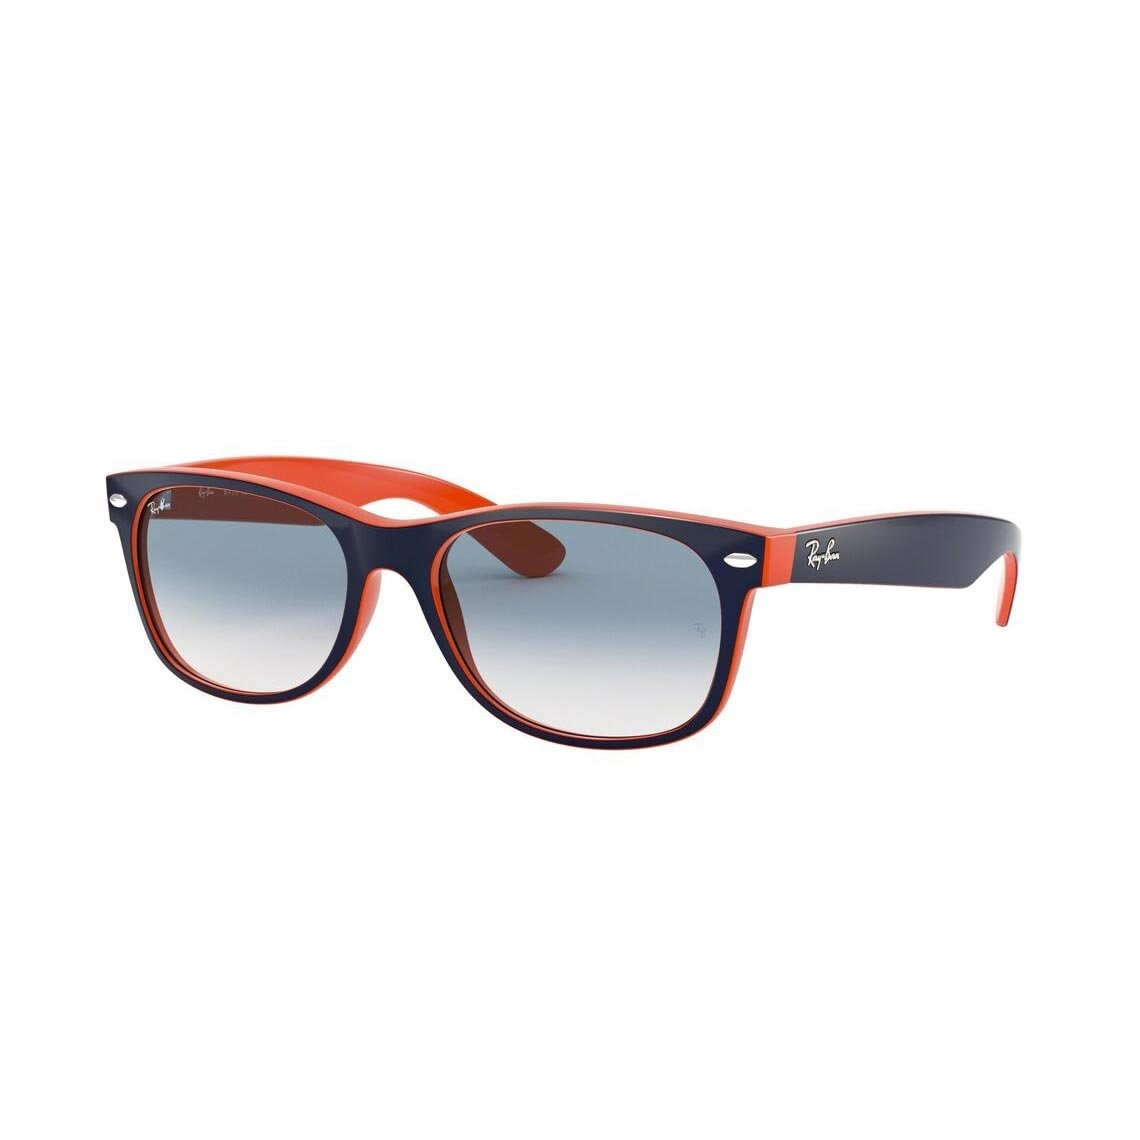 Ray-Ban New Wayfarer RB2132 789/3F 52